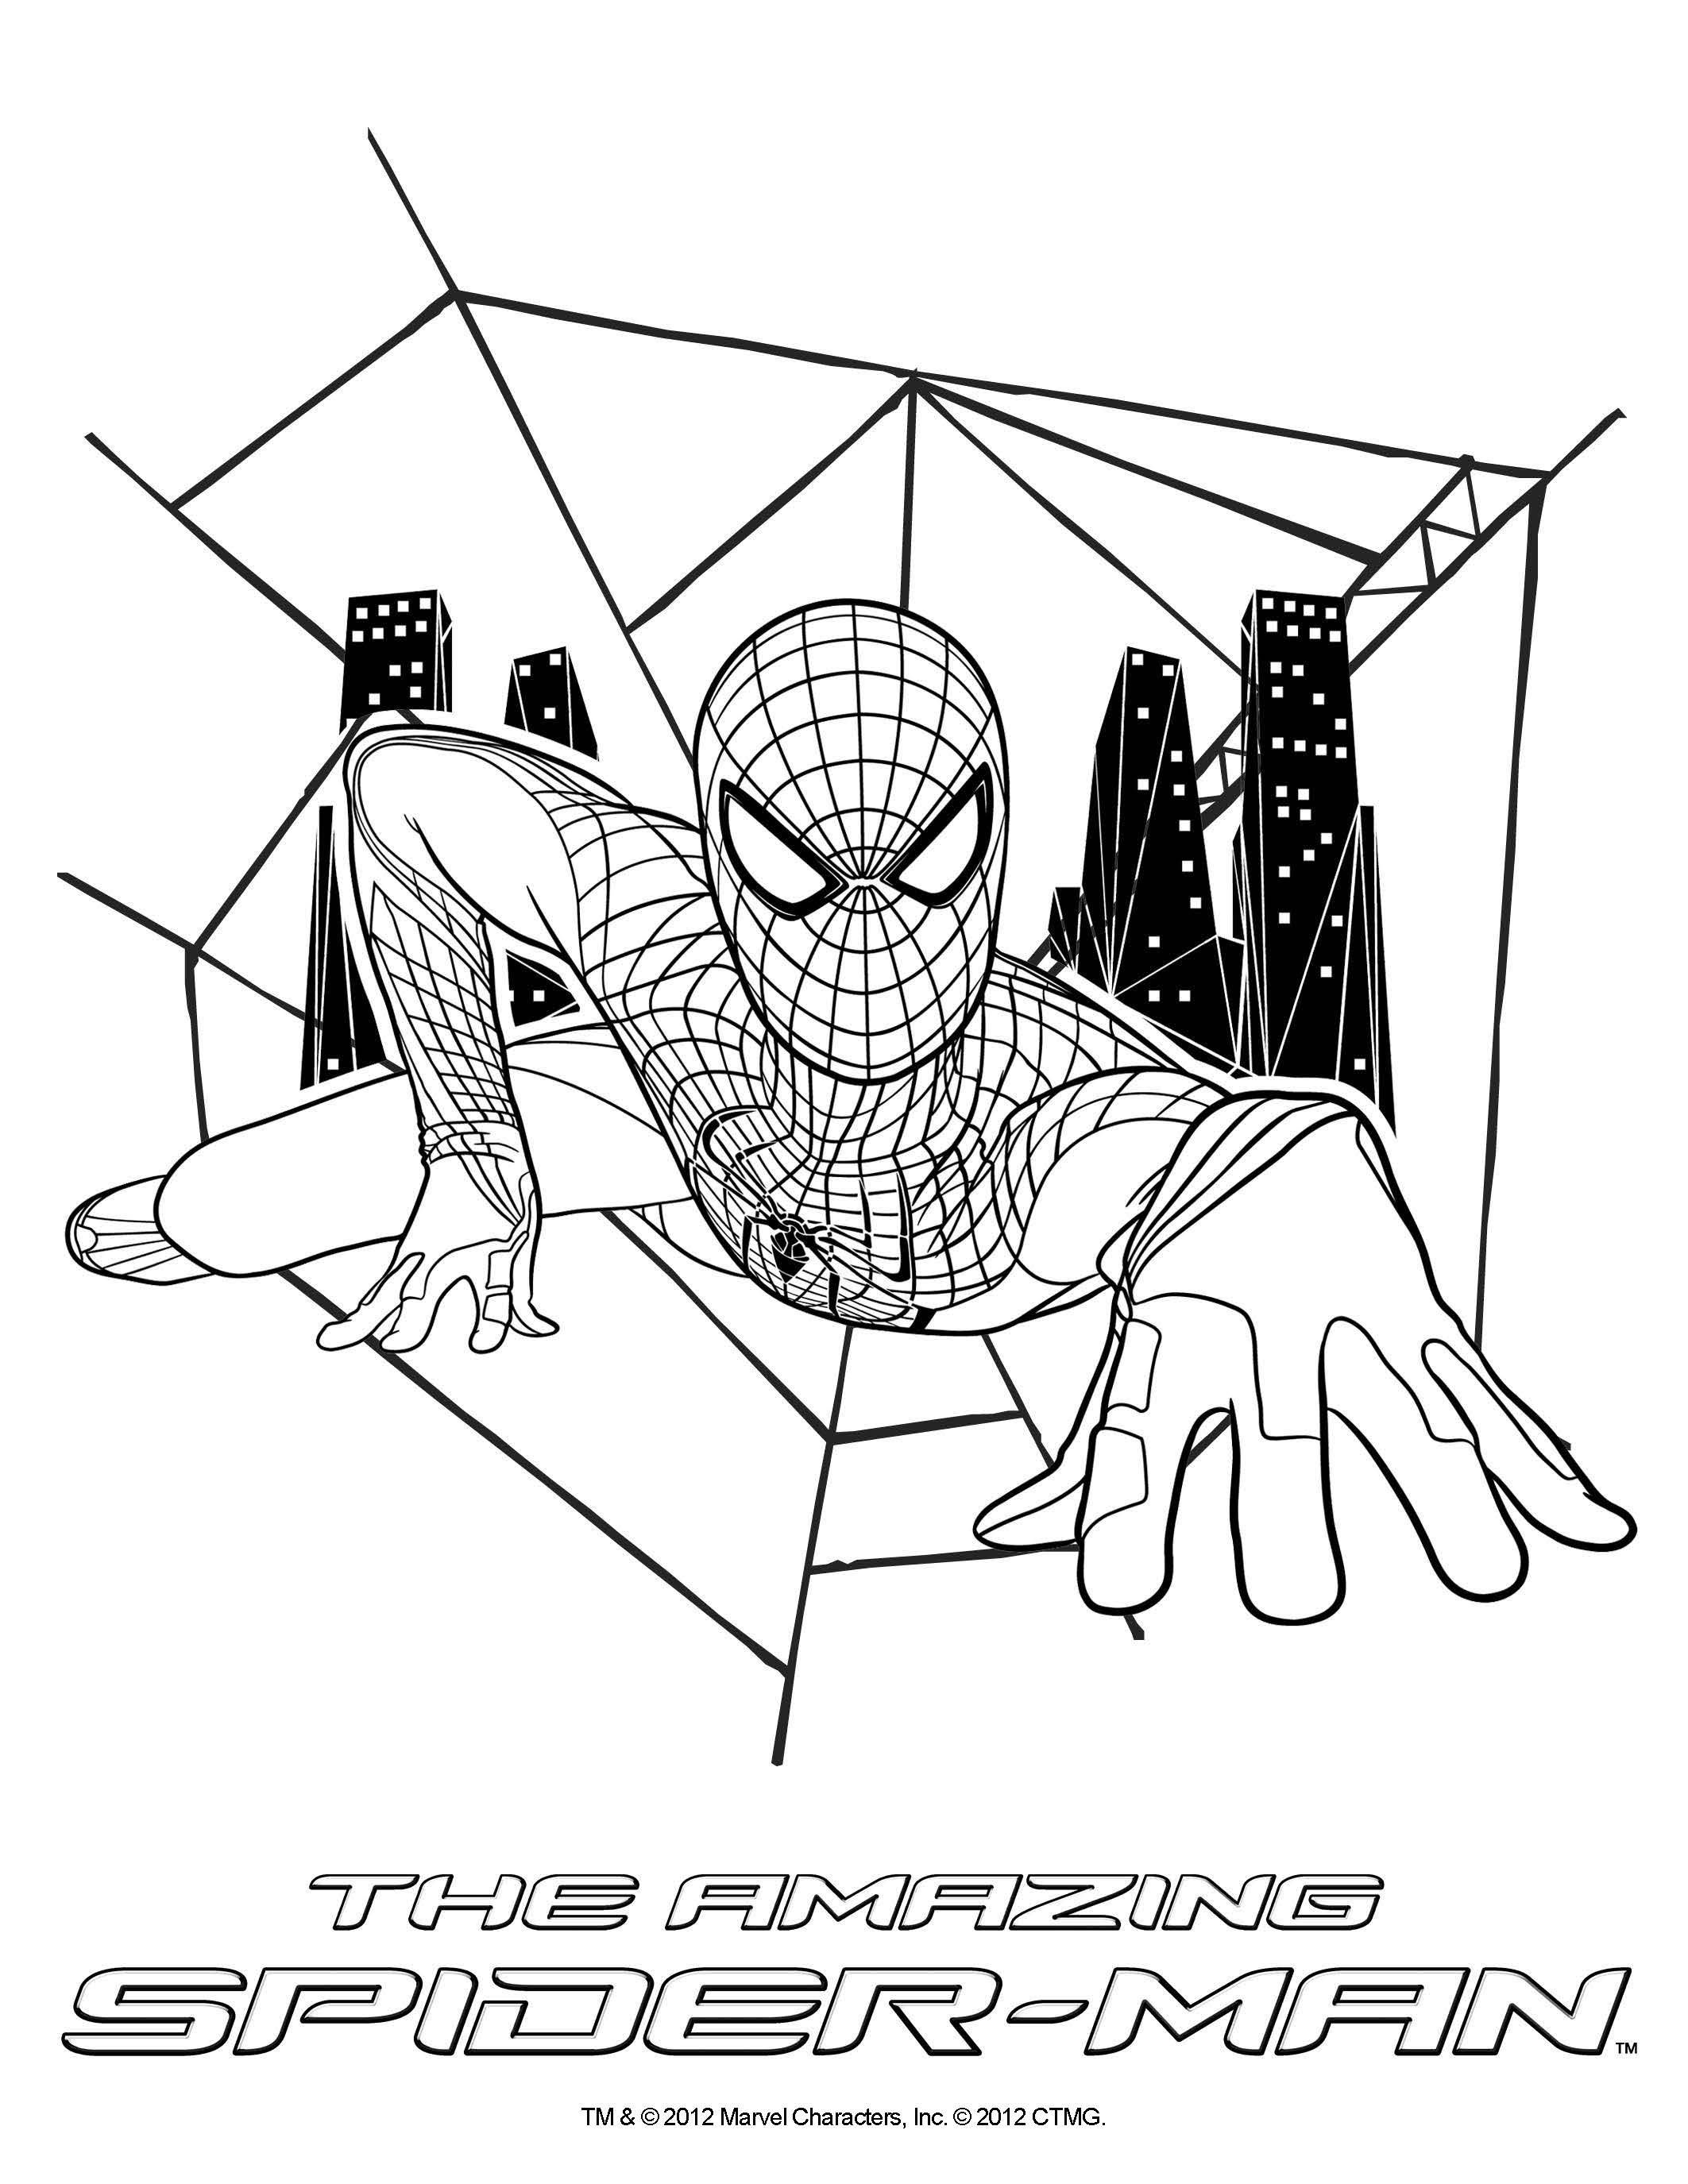 Coloring Sheet The Amazing Spider Man In Theatres July 3